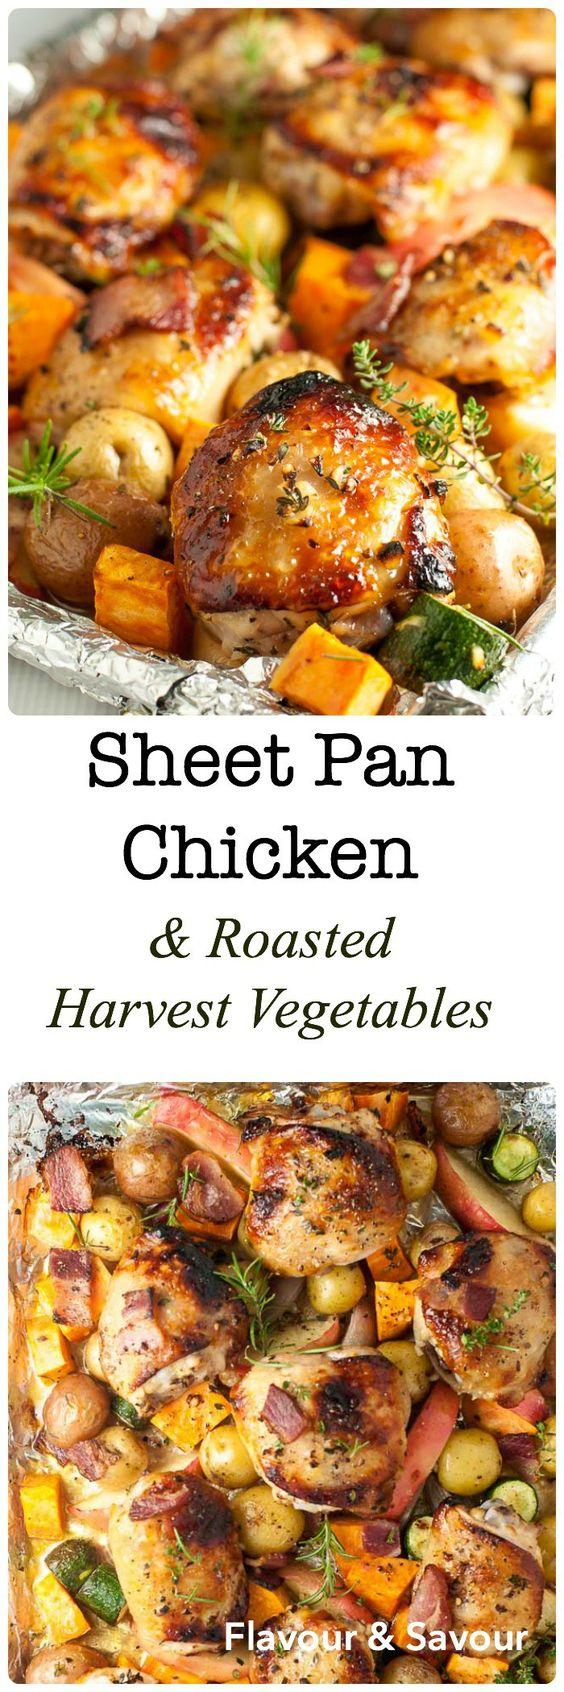 Vegetable Recipes For Kids || Kid Friendly Vegetable Recipes. Bacon, apples and fresh herbs flavour this dinner of Sheet Pan Chicken and Roasted Harvest Vegetables. Crispy chicken and roasted vegetables make a complete meal, made in one pan, baked in just 30 minutes. You can find the recipe from Flavour and Savour.